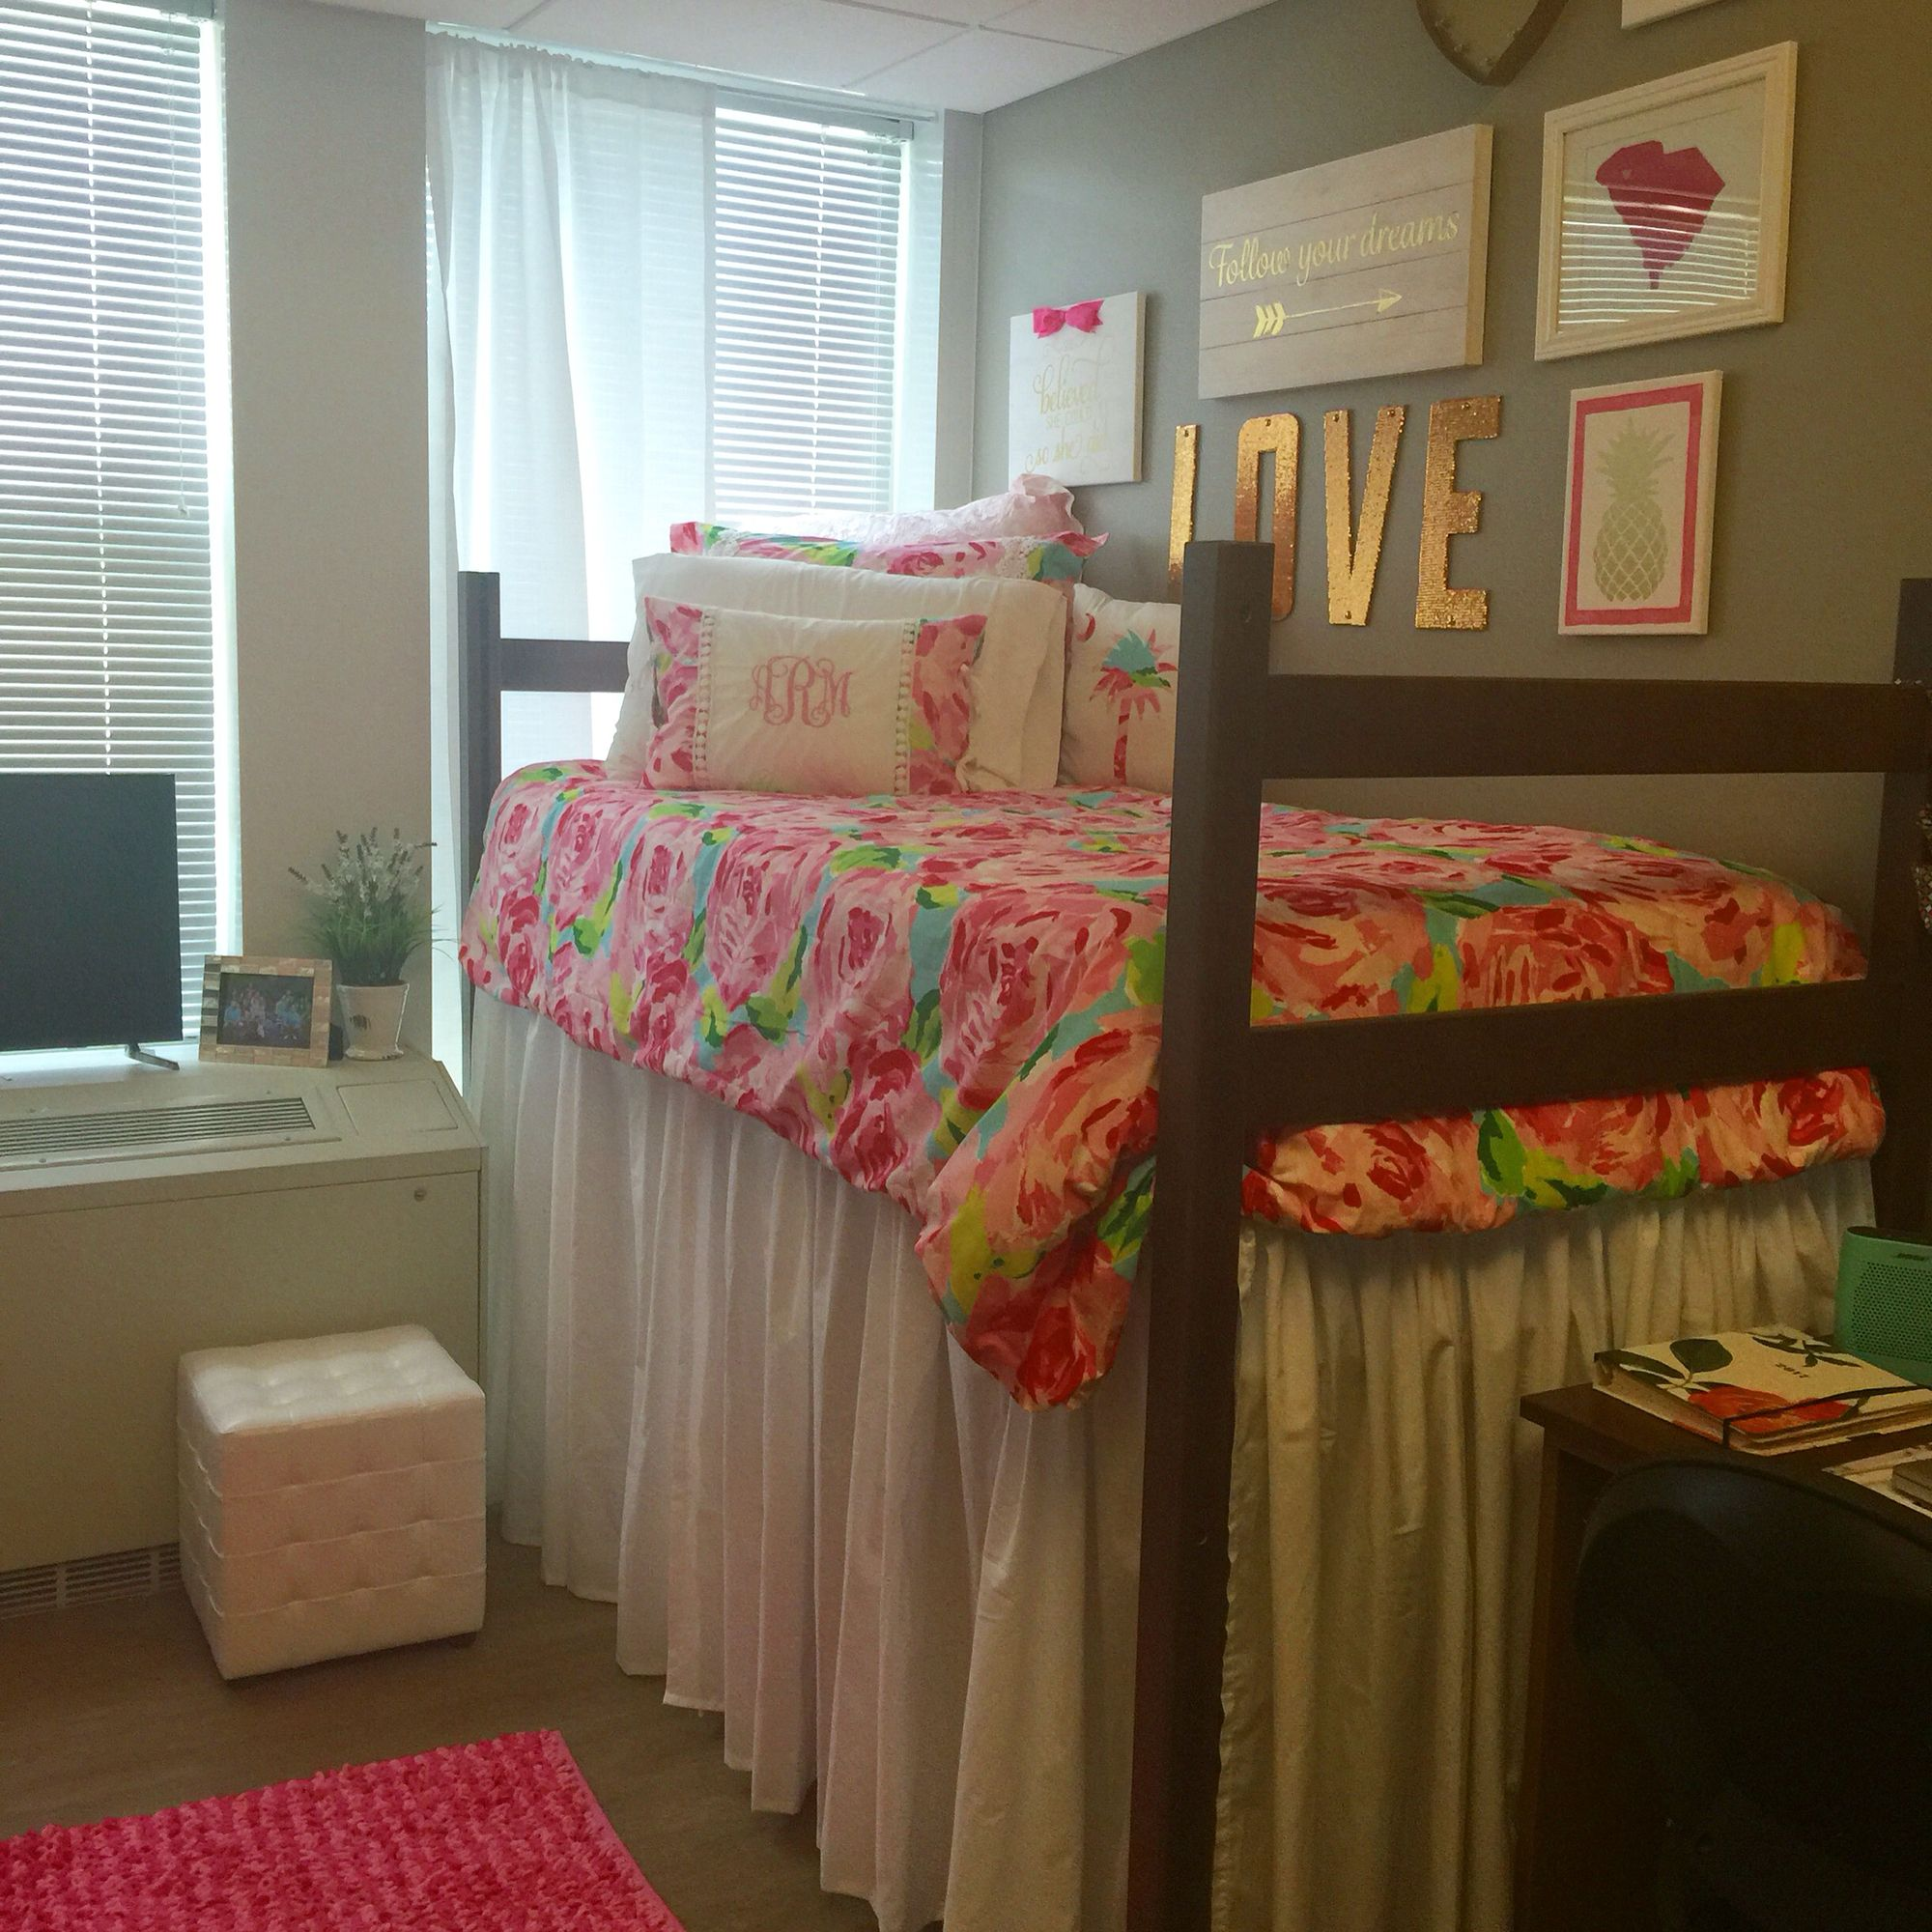 Dorm Room Patterson Hall University Of South Carolina Part 94